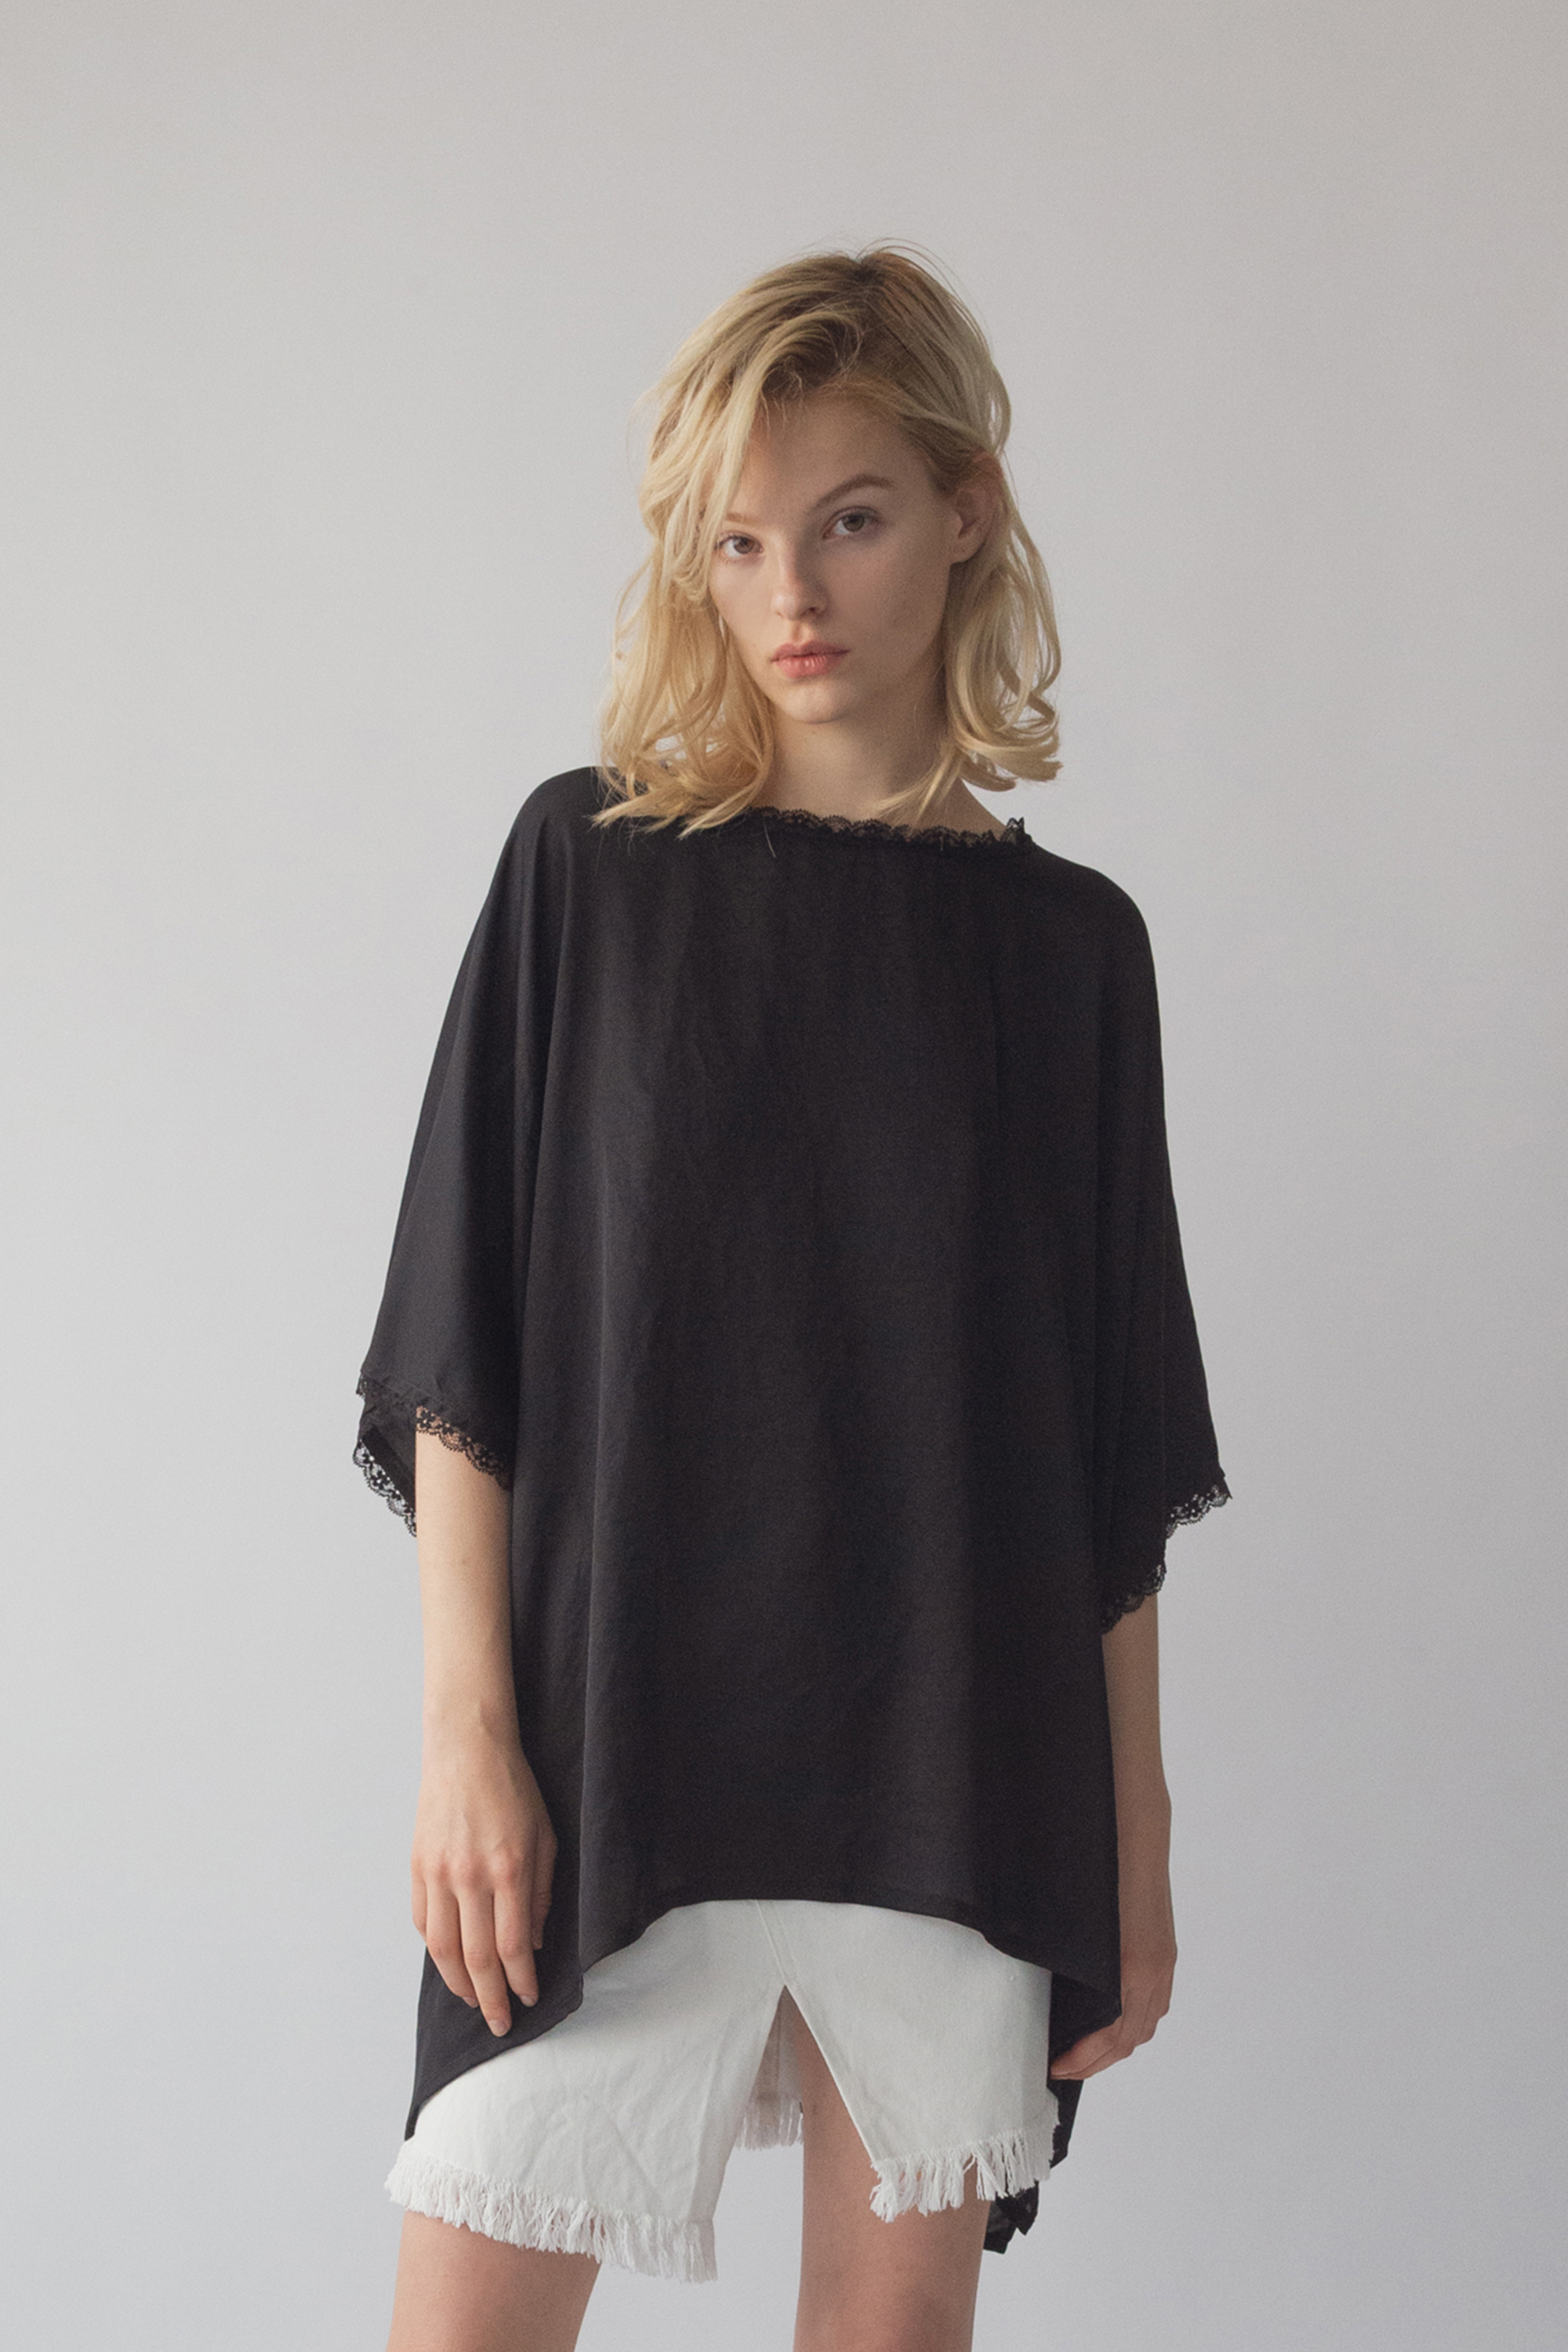 df20SS-02 LACE SATIN O/S TOPS (black)